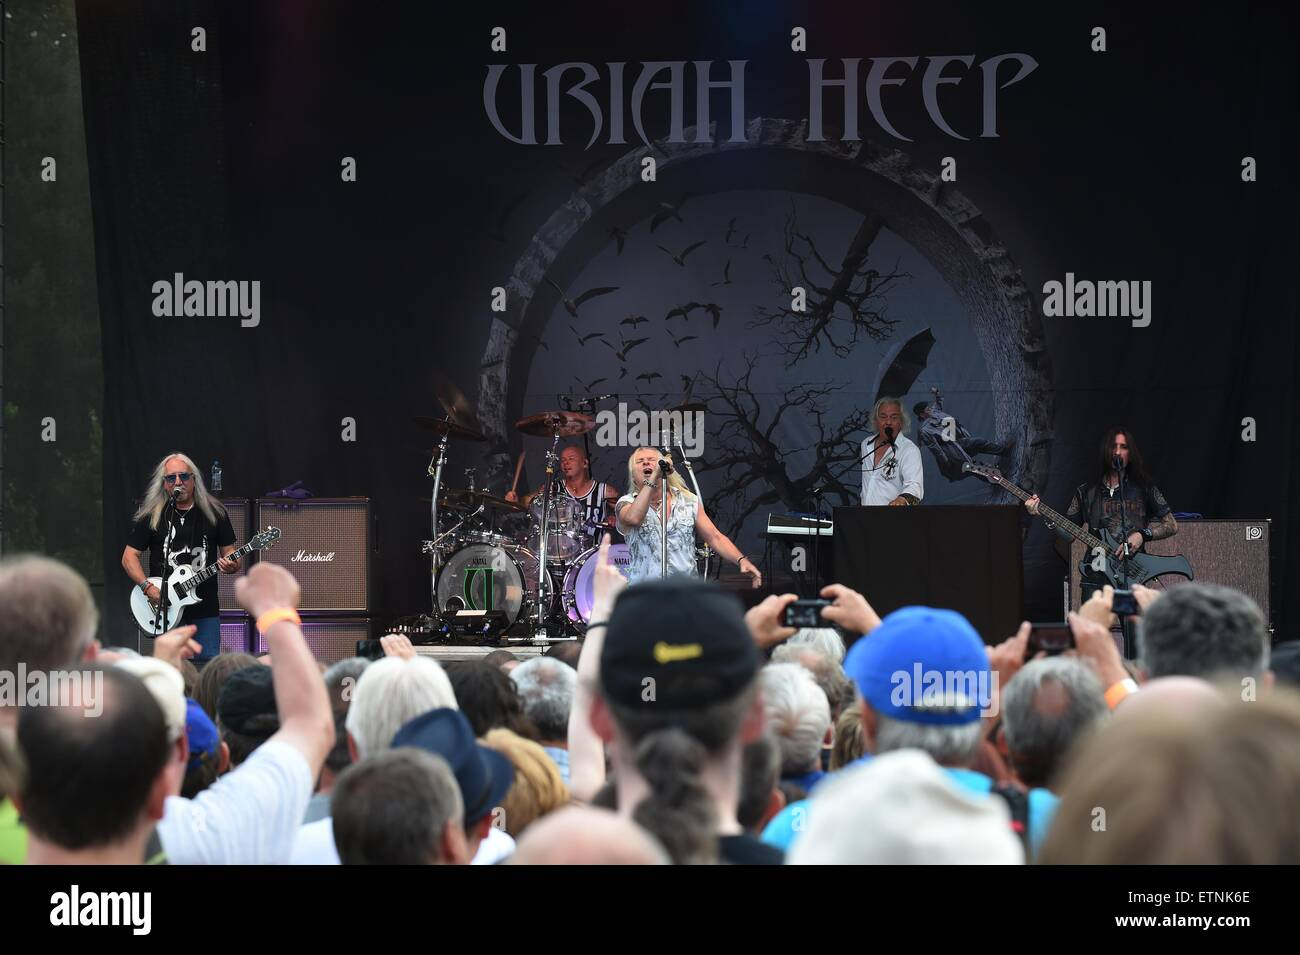 Mick Box, Russel Gilbrook, Bernie Shaw, Phil Lanzon and Davey Rimmer, from left, of British heavy metal group Uriah - Stock Image